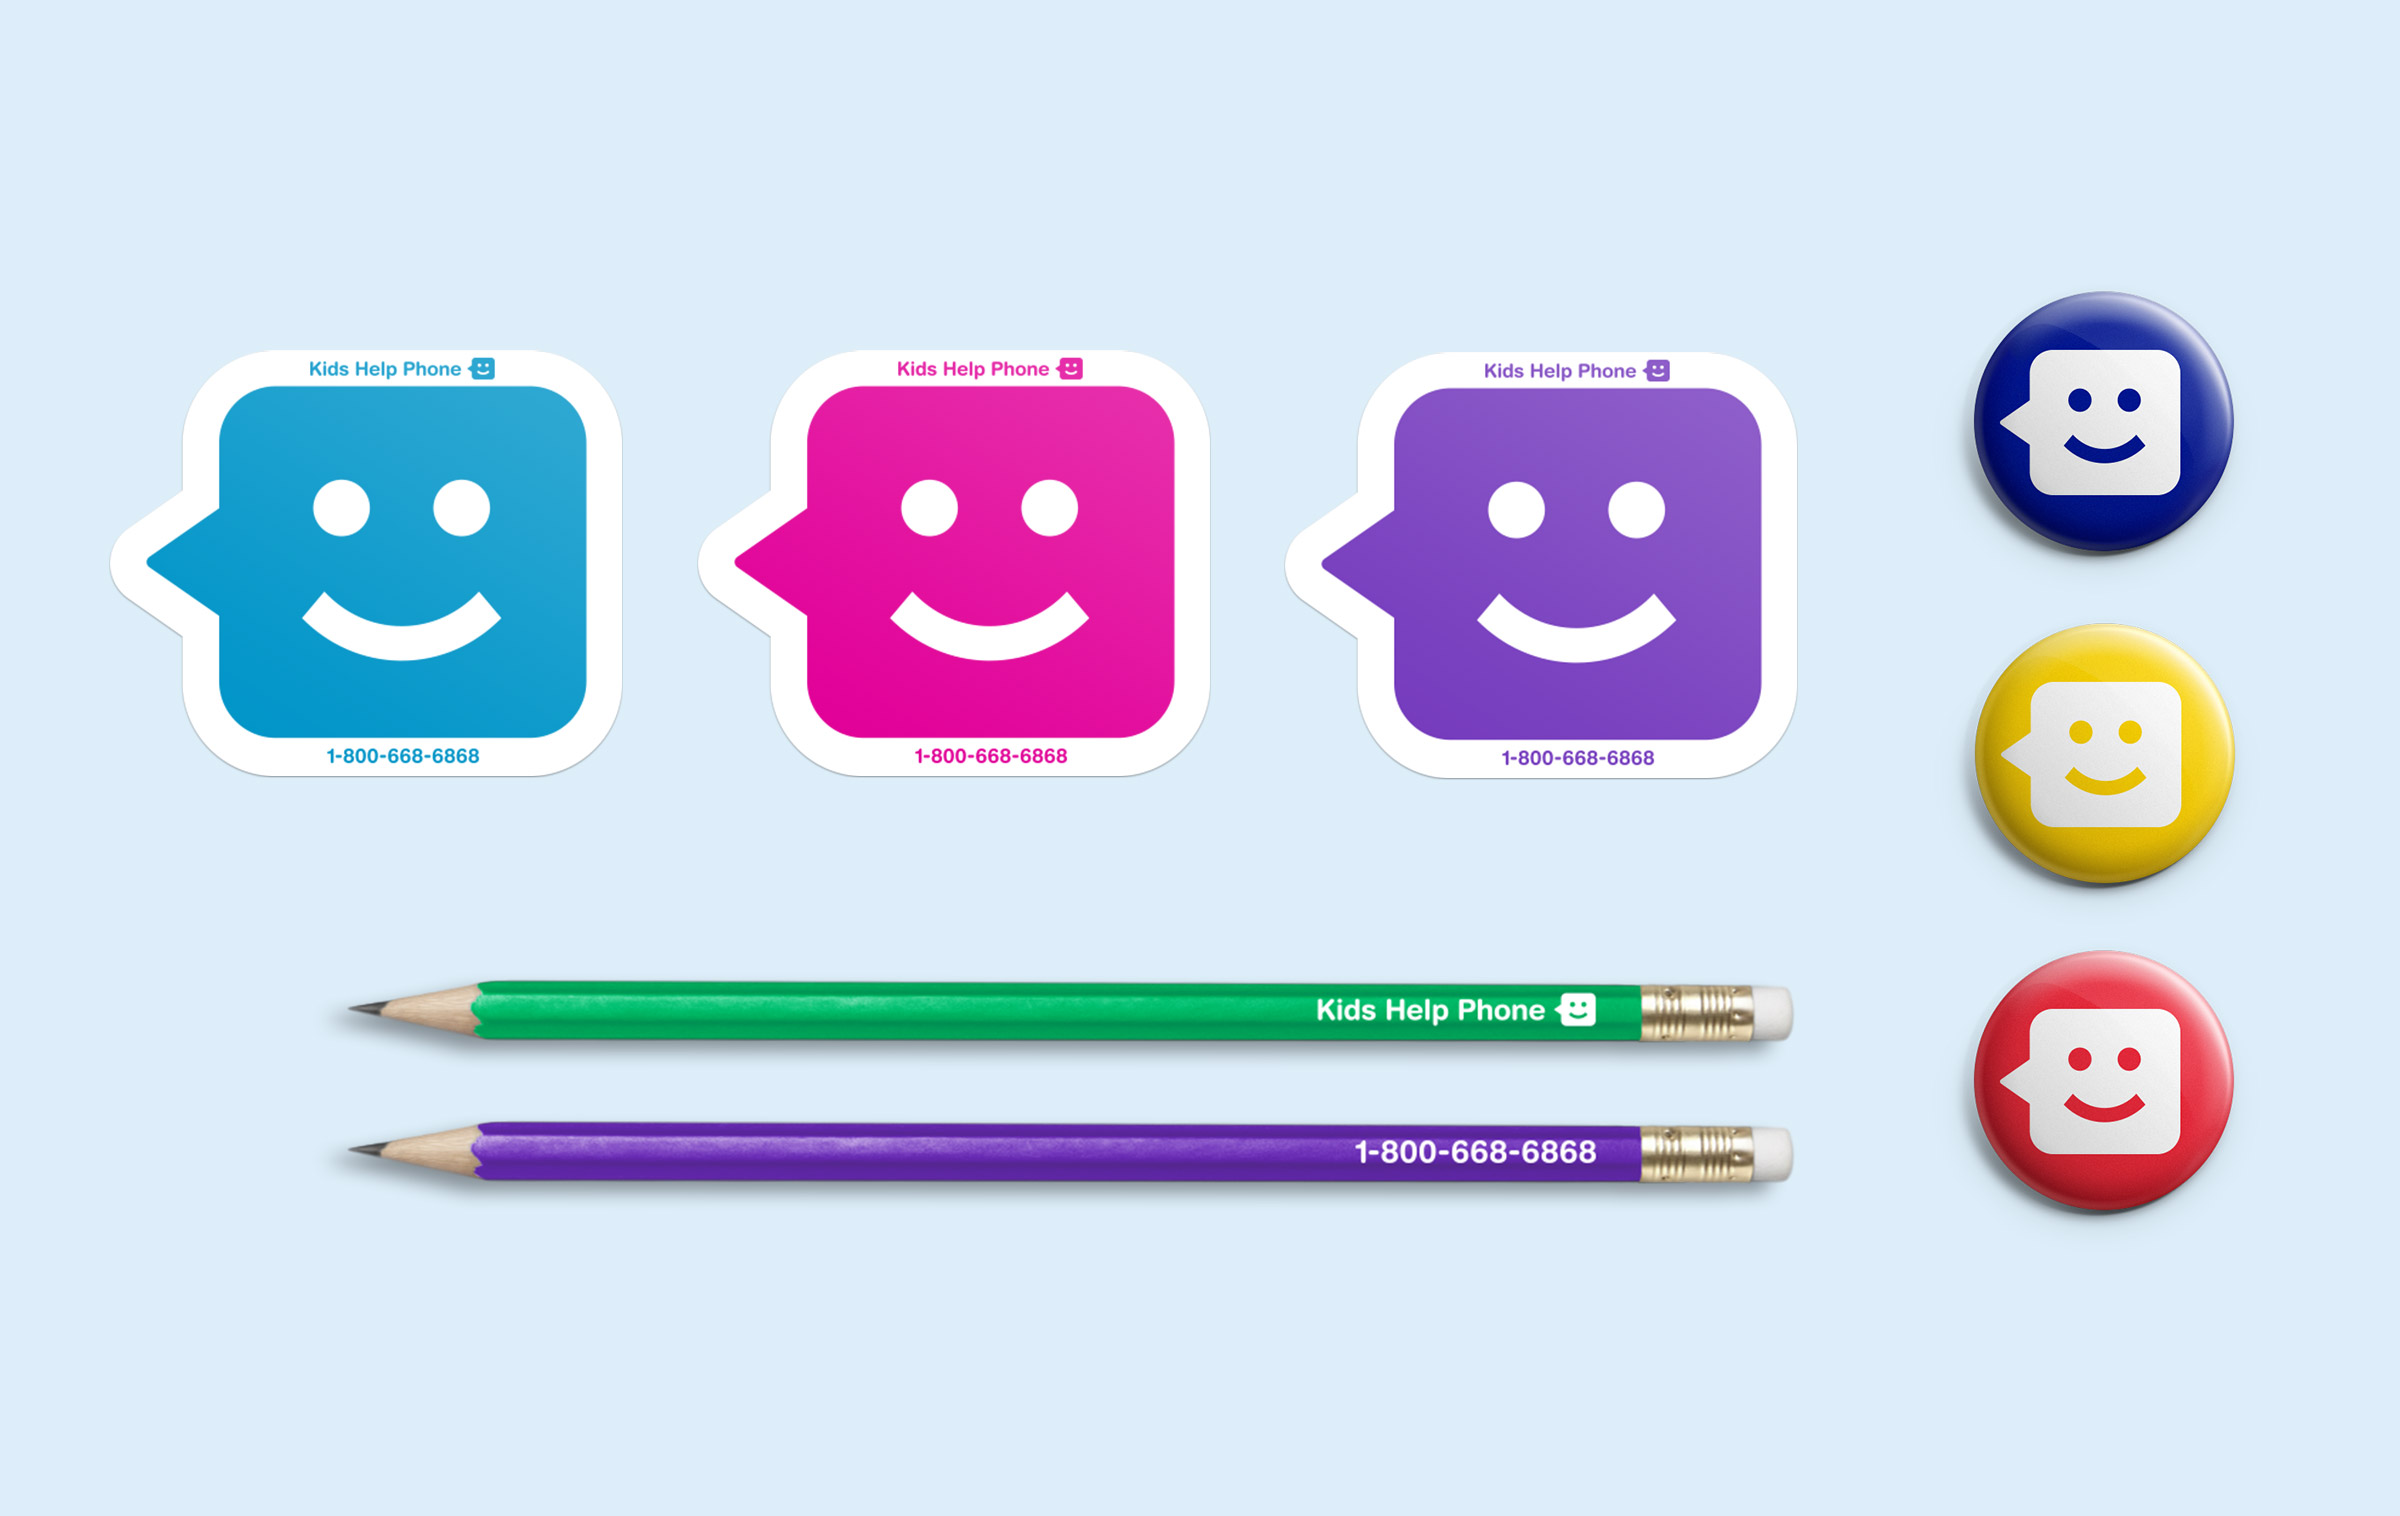 Stickers, badges, and pencils with Kids Help Phone branding